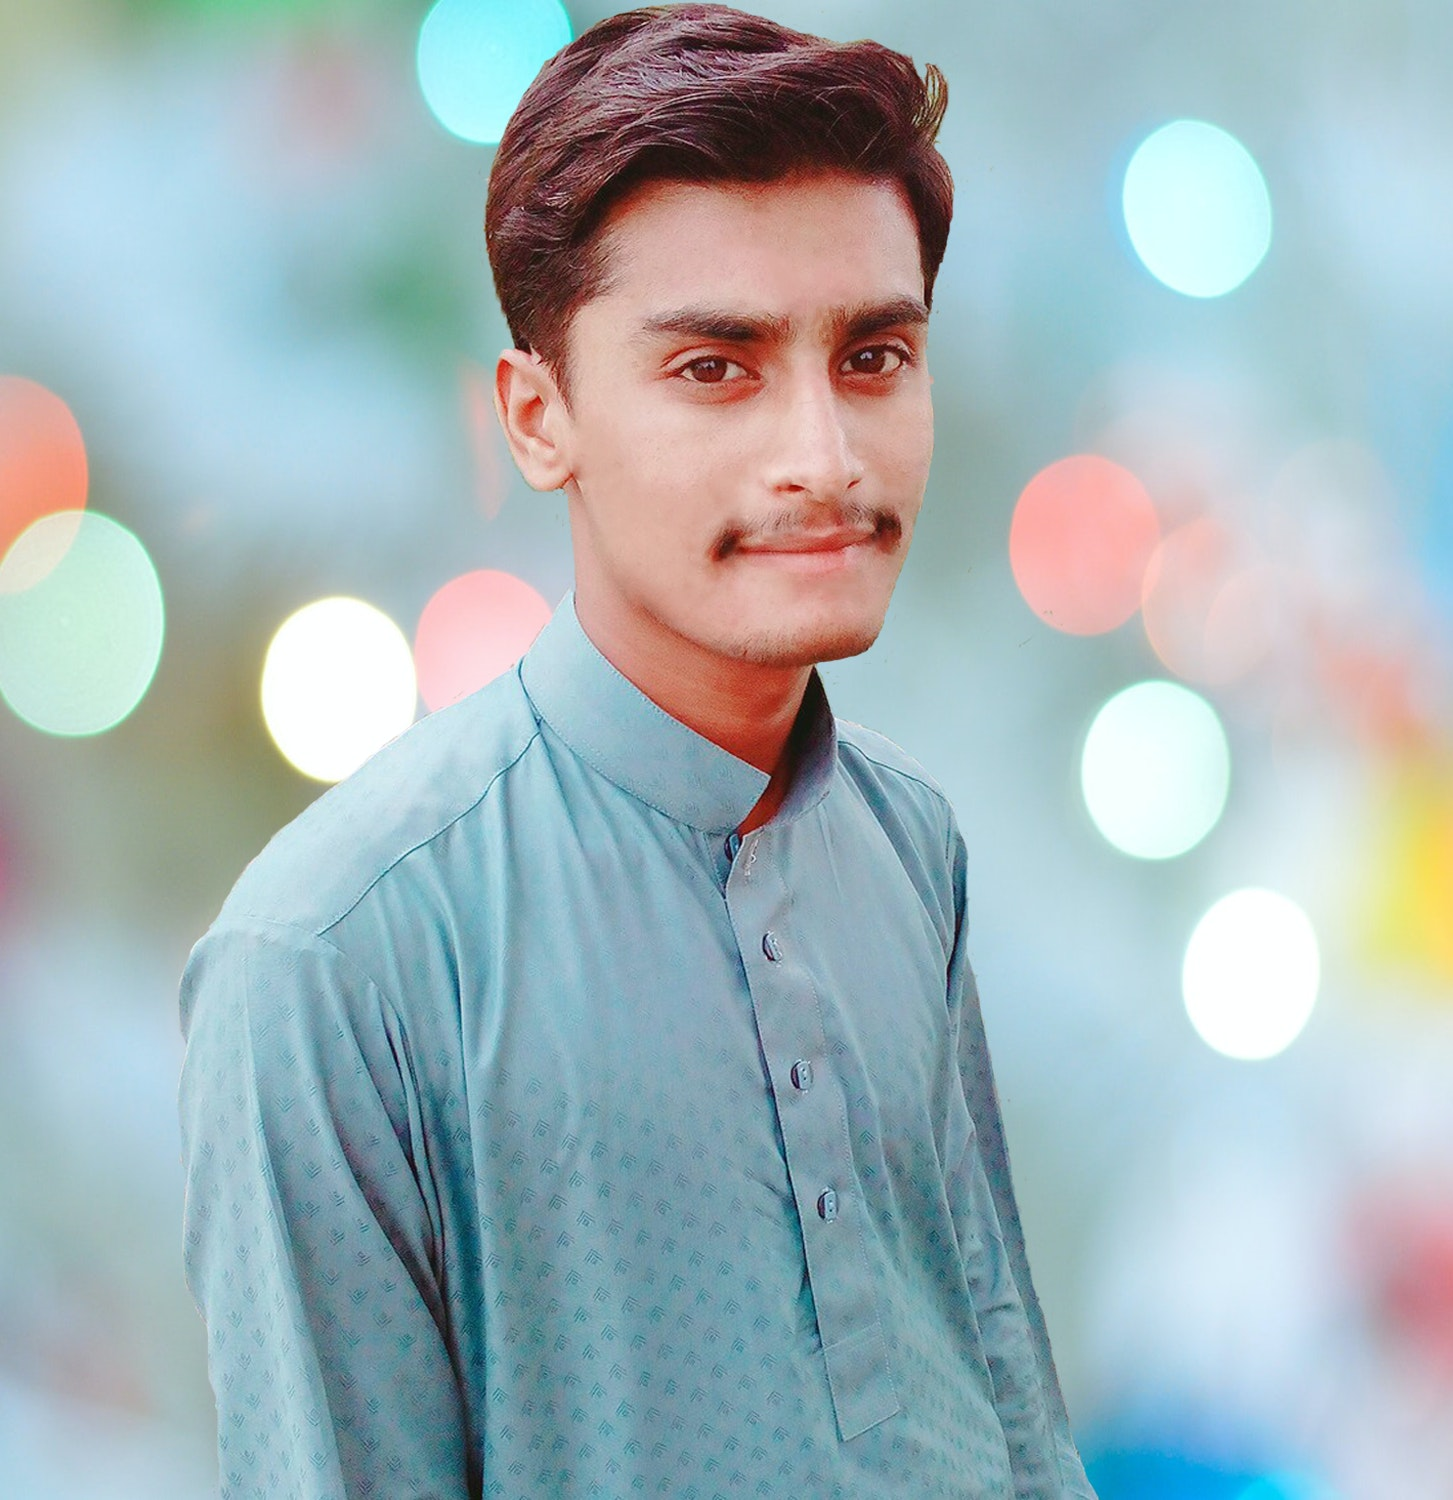 Free stock photo of editing, photo editing, umair